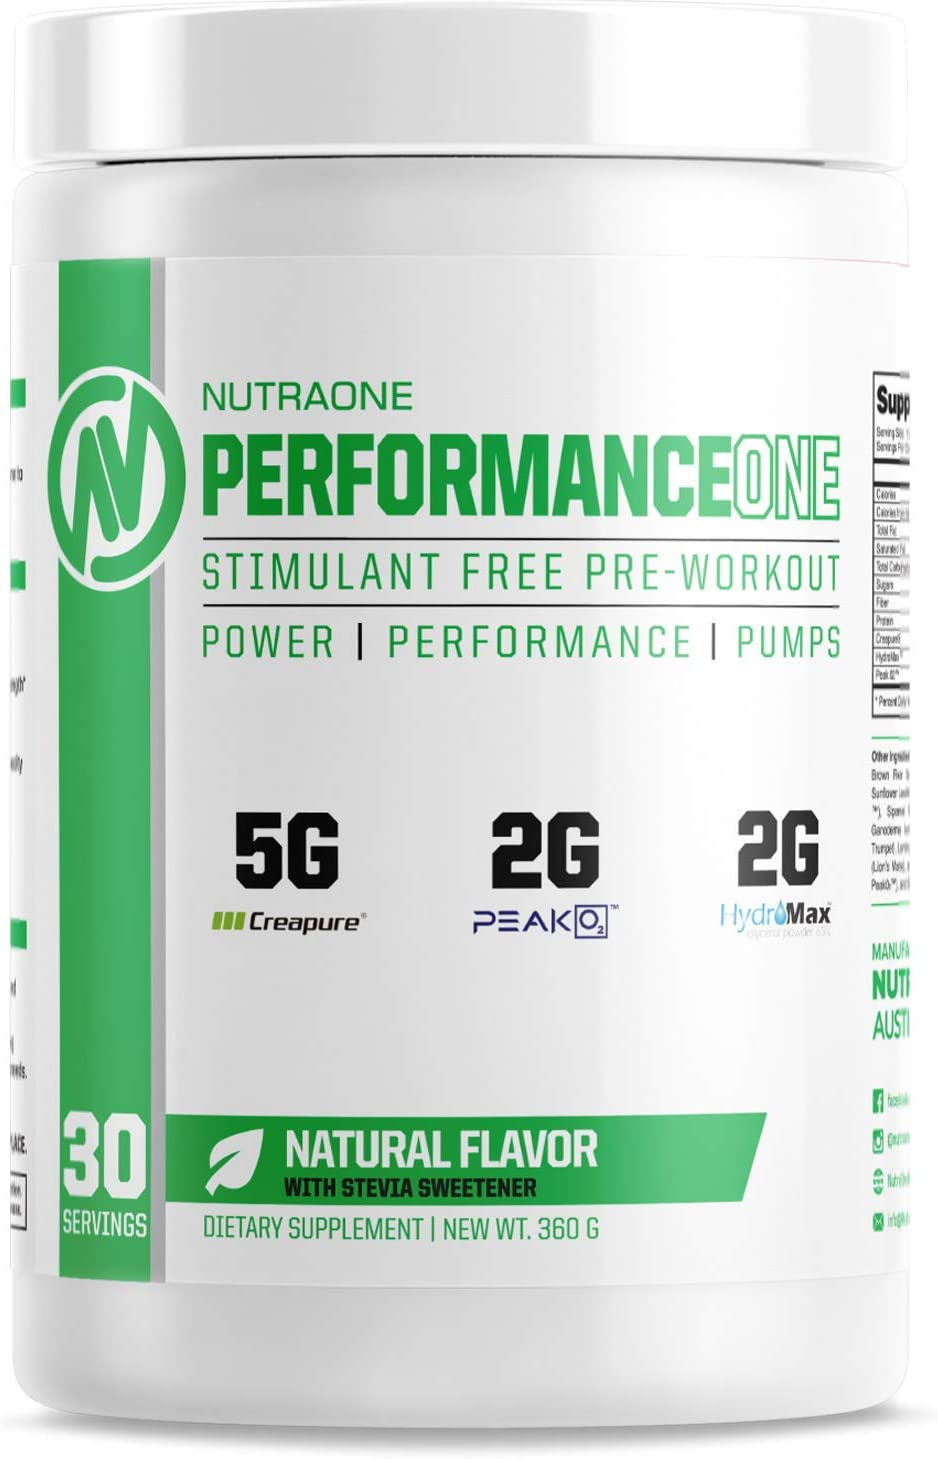 PerformanceOne Stimulant Free Preworkout Powder by NutraOne Caffeine Free Preworkout Powder 30 Servings